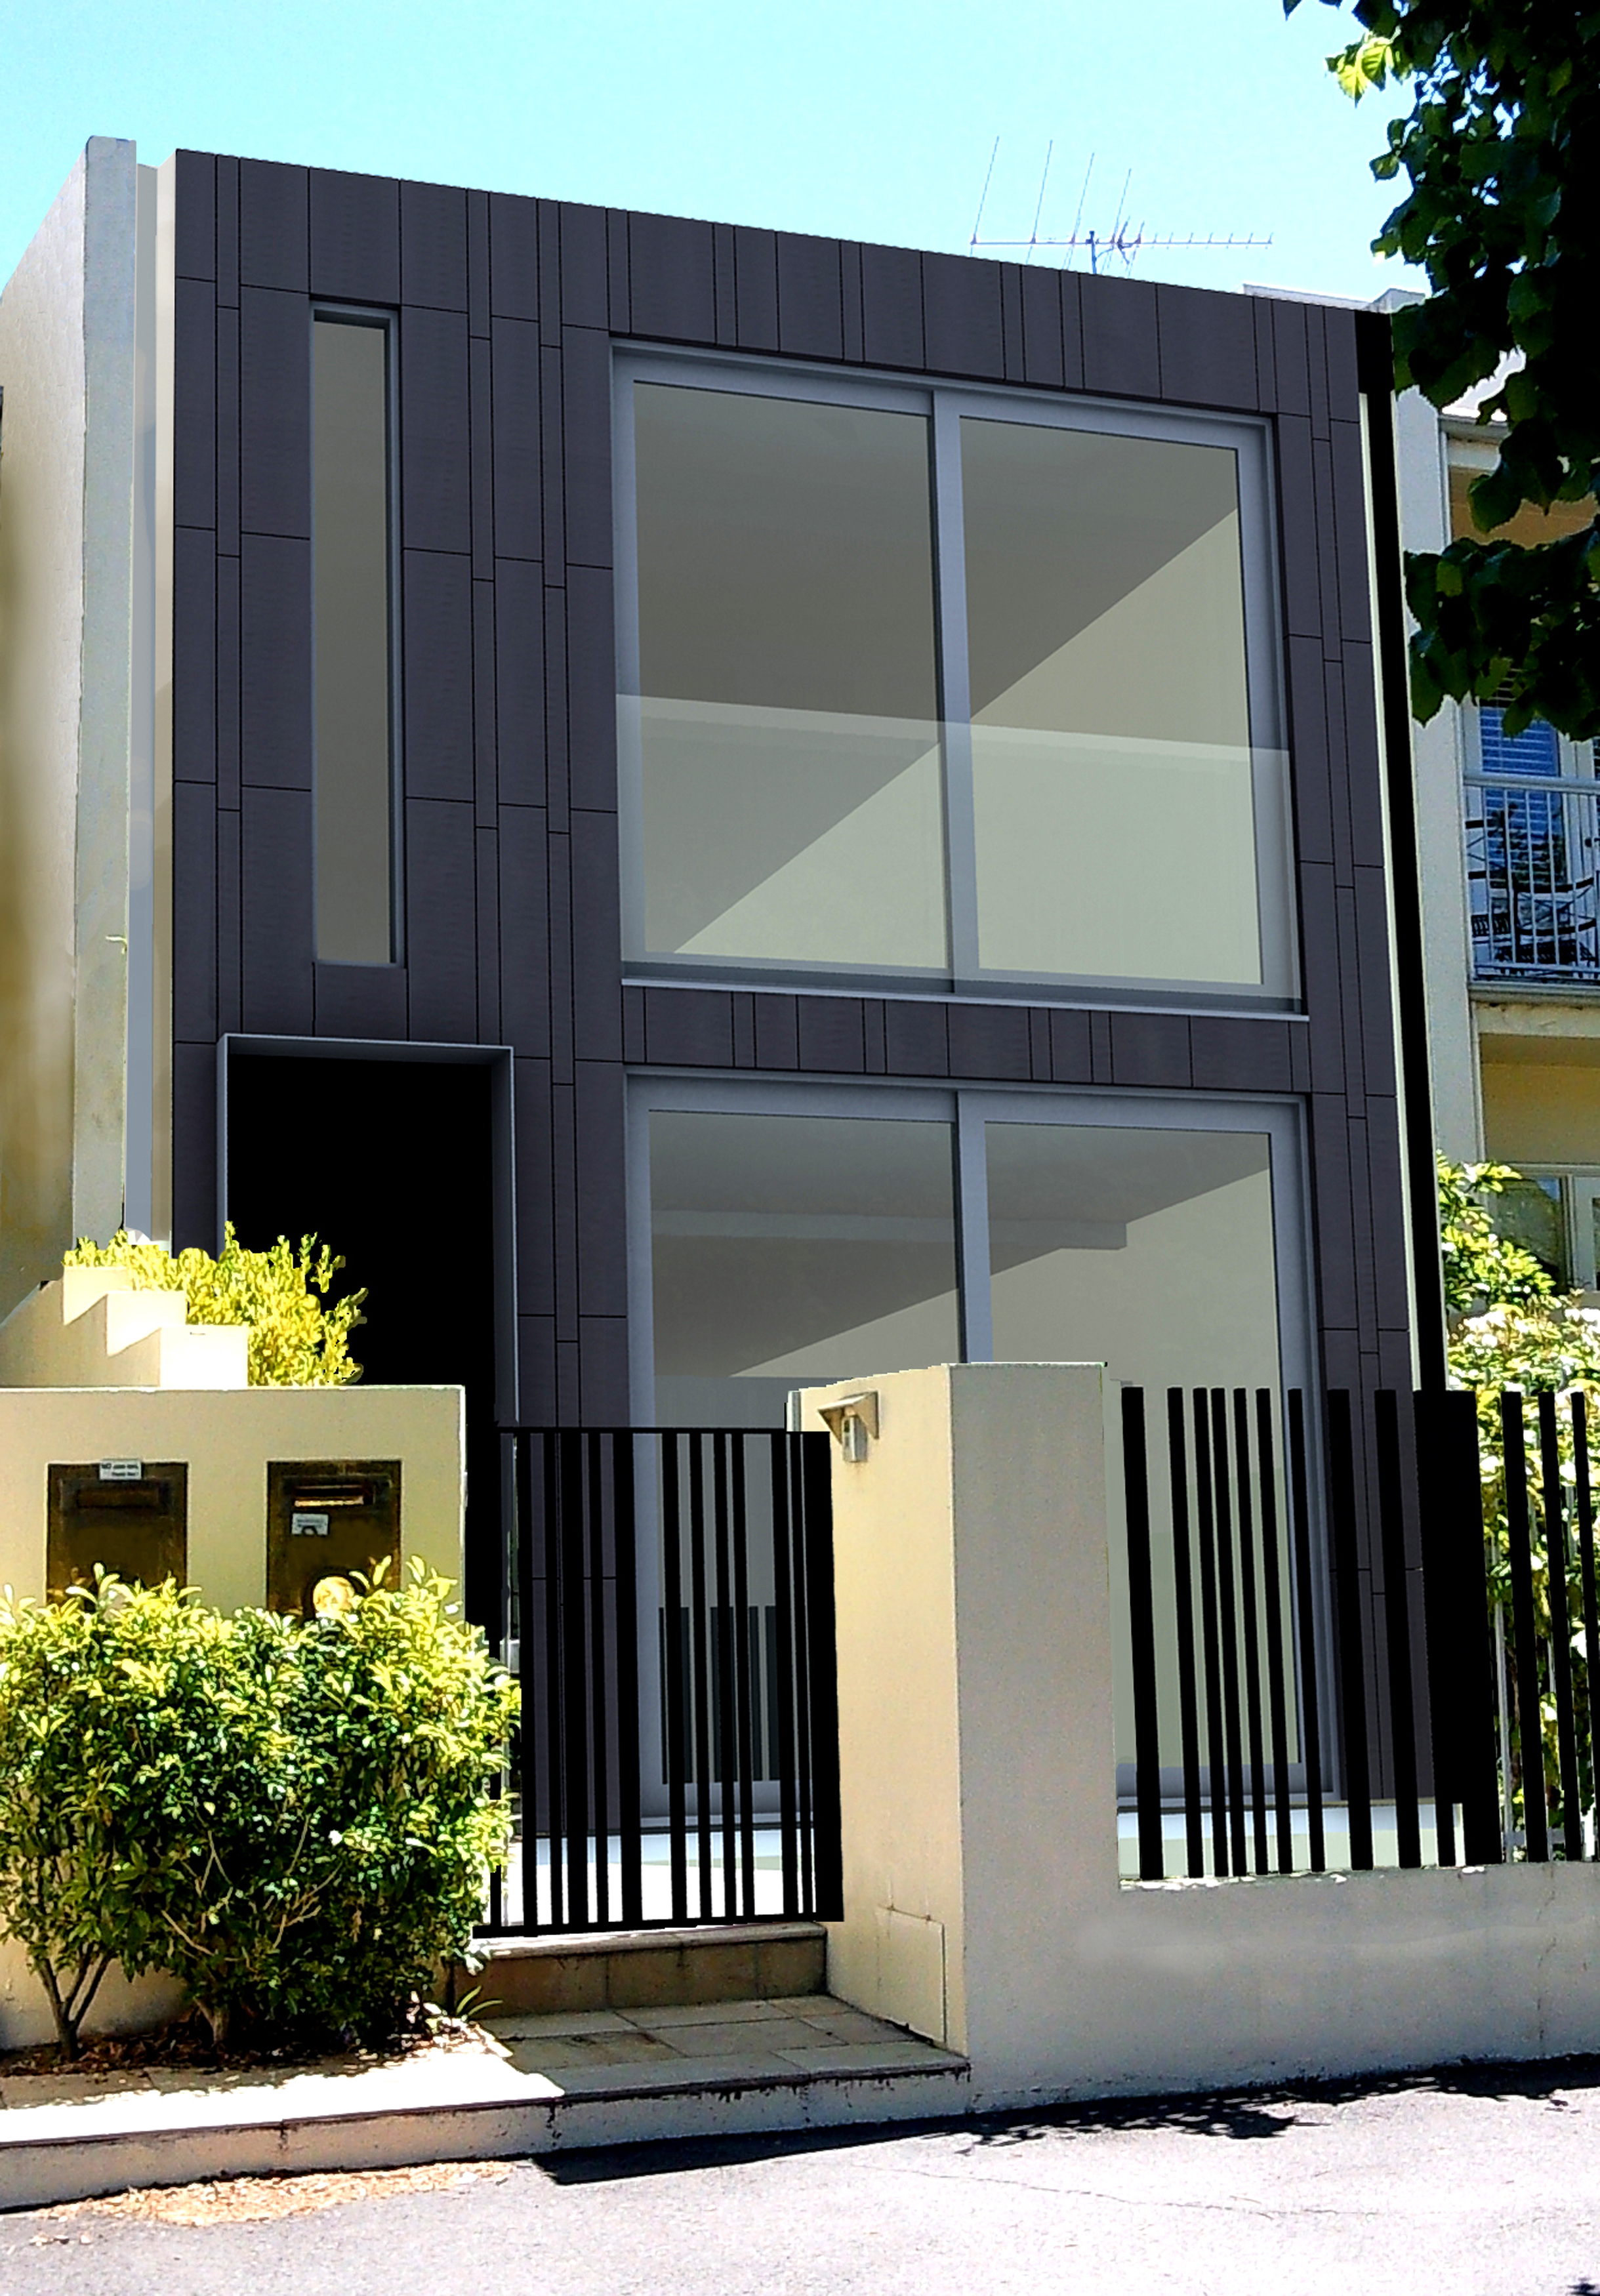 PROPOSED FRONT FACADE OF MAKEOVER RESIDENCE SOUTH MELBOURNE